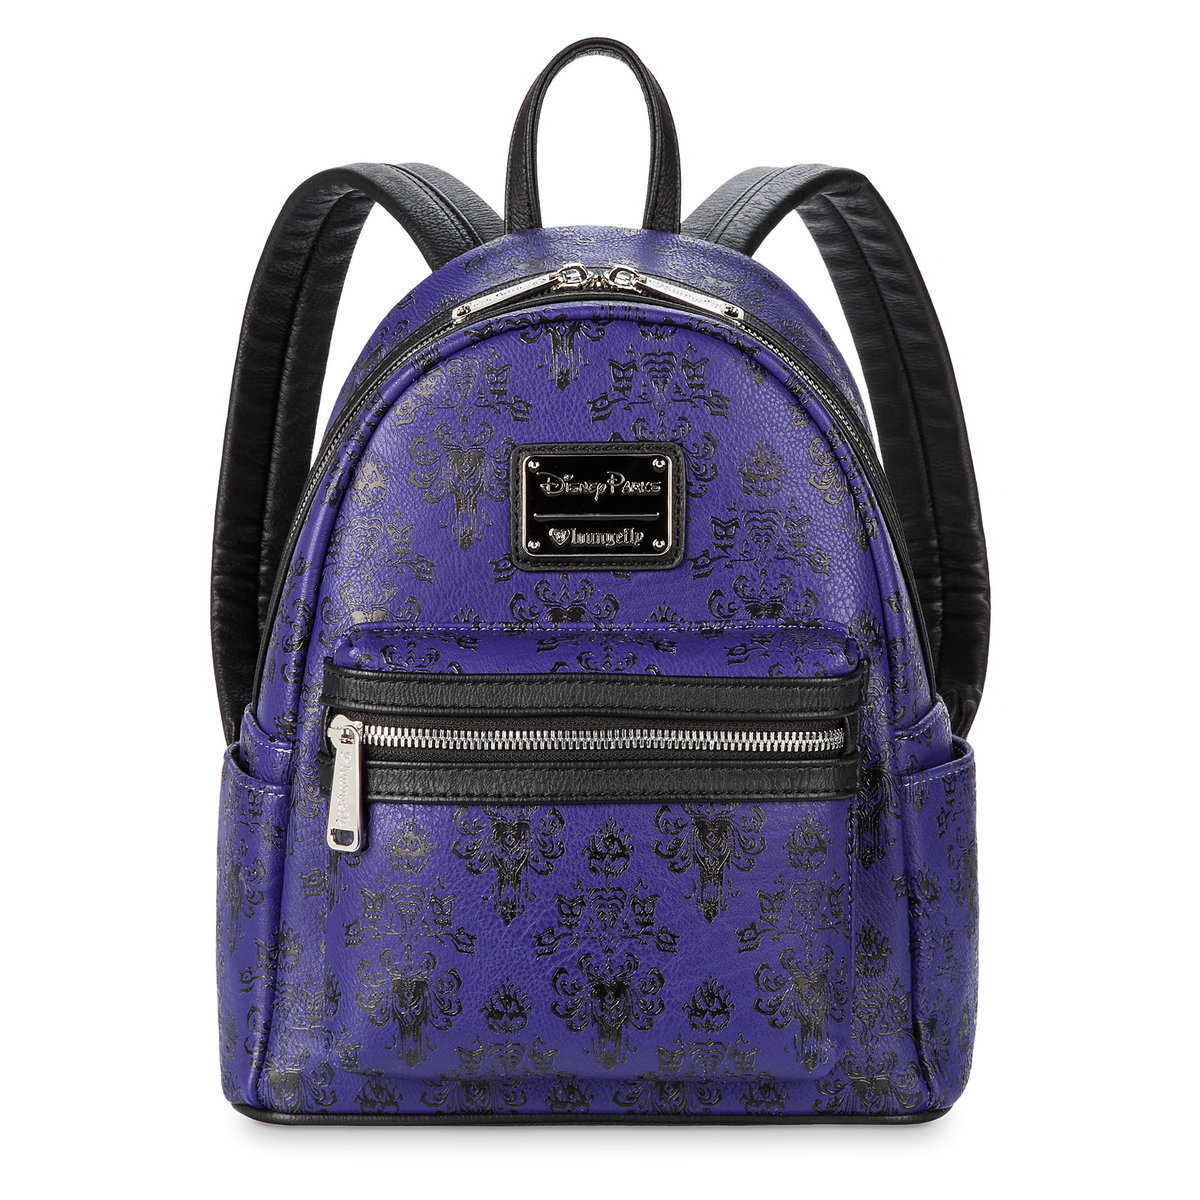 acf579d3f51 Product Image of Haunted Mansion Wallpaper Mini Backpack by Loungefly   1